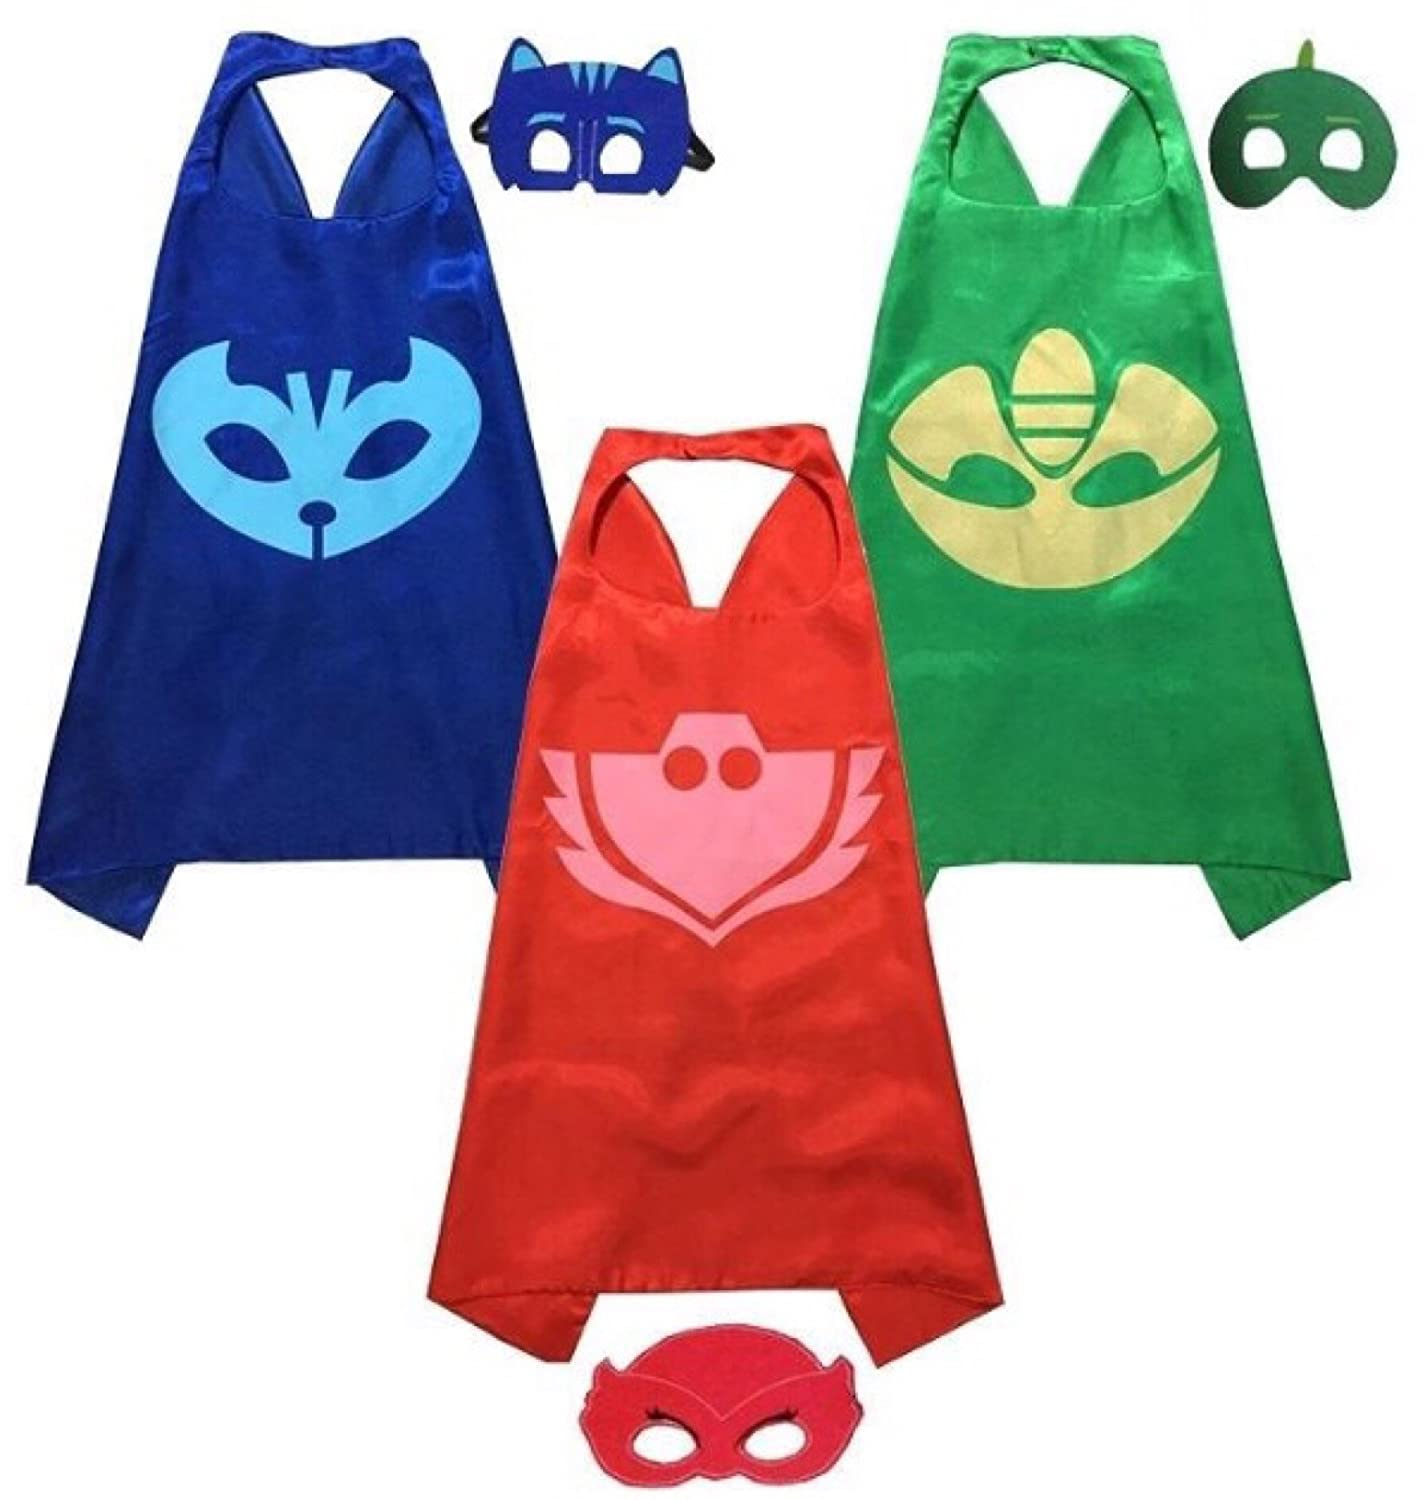 PJ Masks Costumes For Kids Set of 3 Catboy Owlette Gekko Costumes - 3 Satin Capes and 3Felt Masks